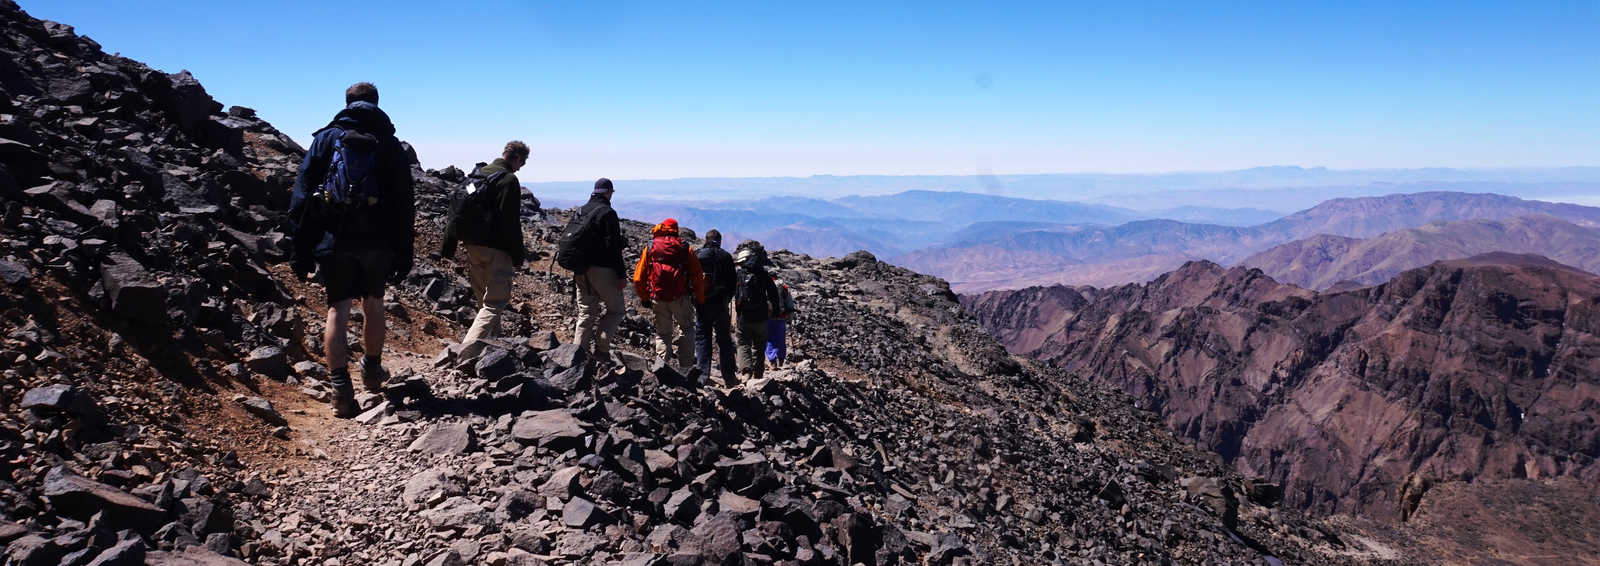 Decending from Moutn Toubkal (4167m)